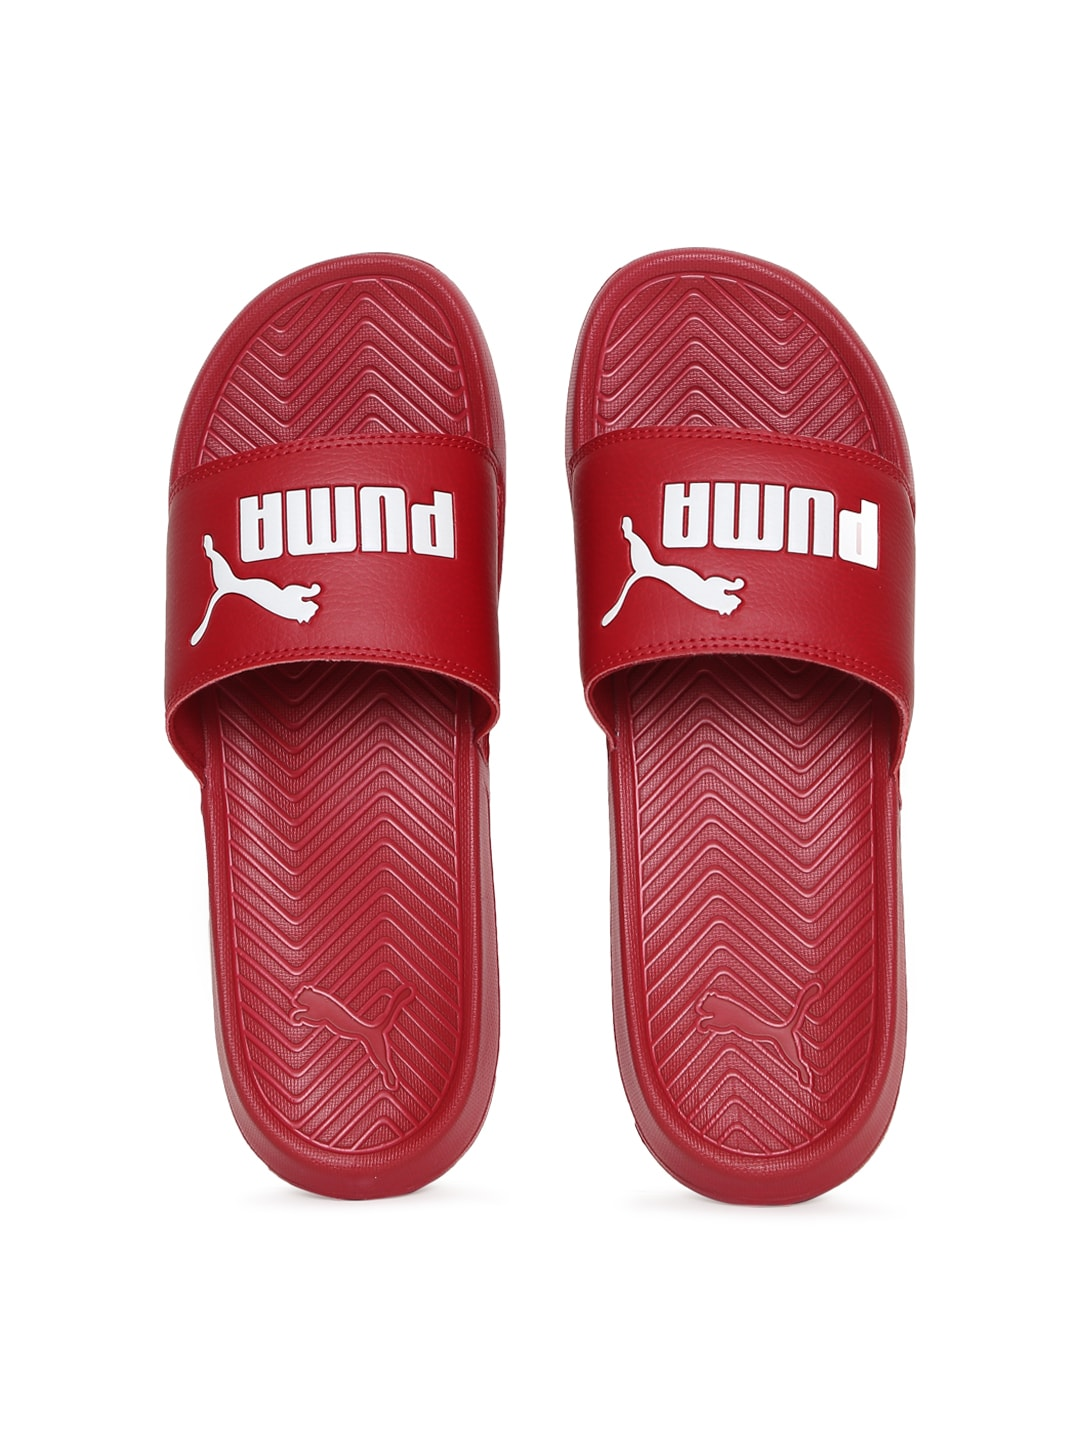 Puma Men Red Popcat Slides image